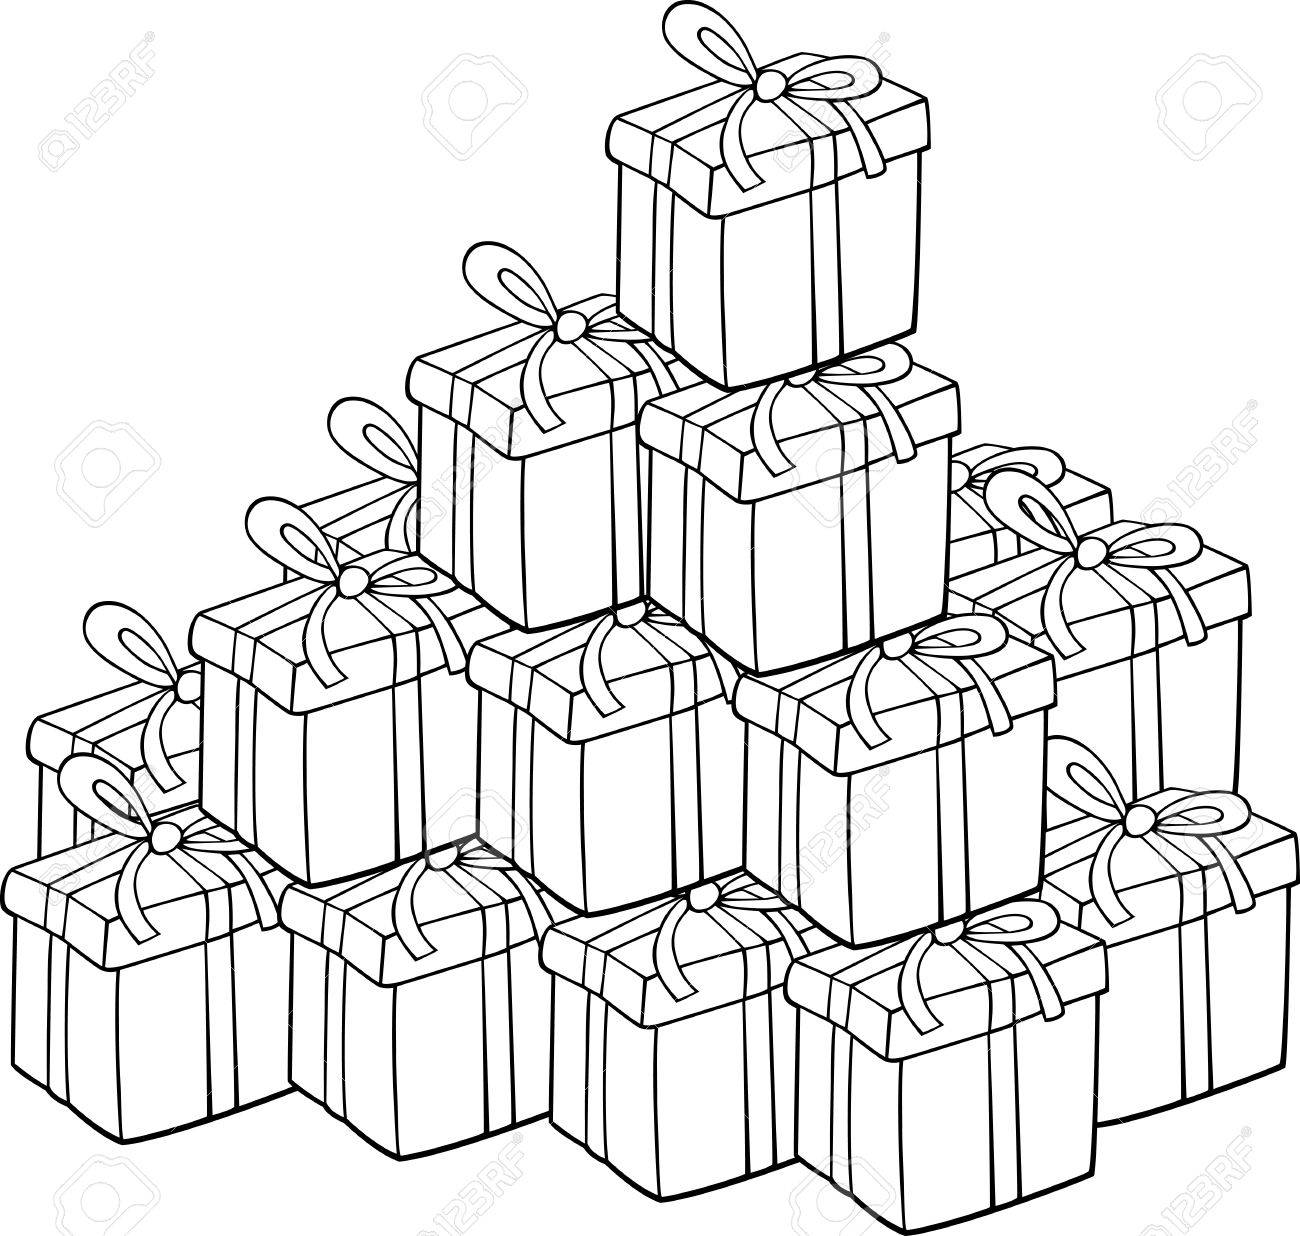 cartoon illustration of heap of christmas presents for coloring